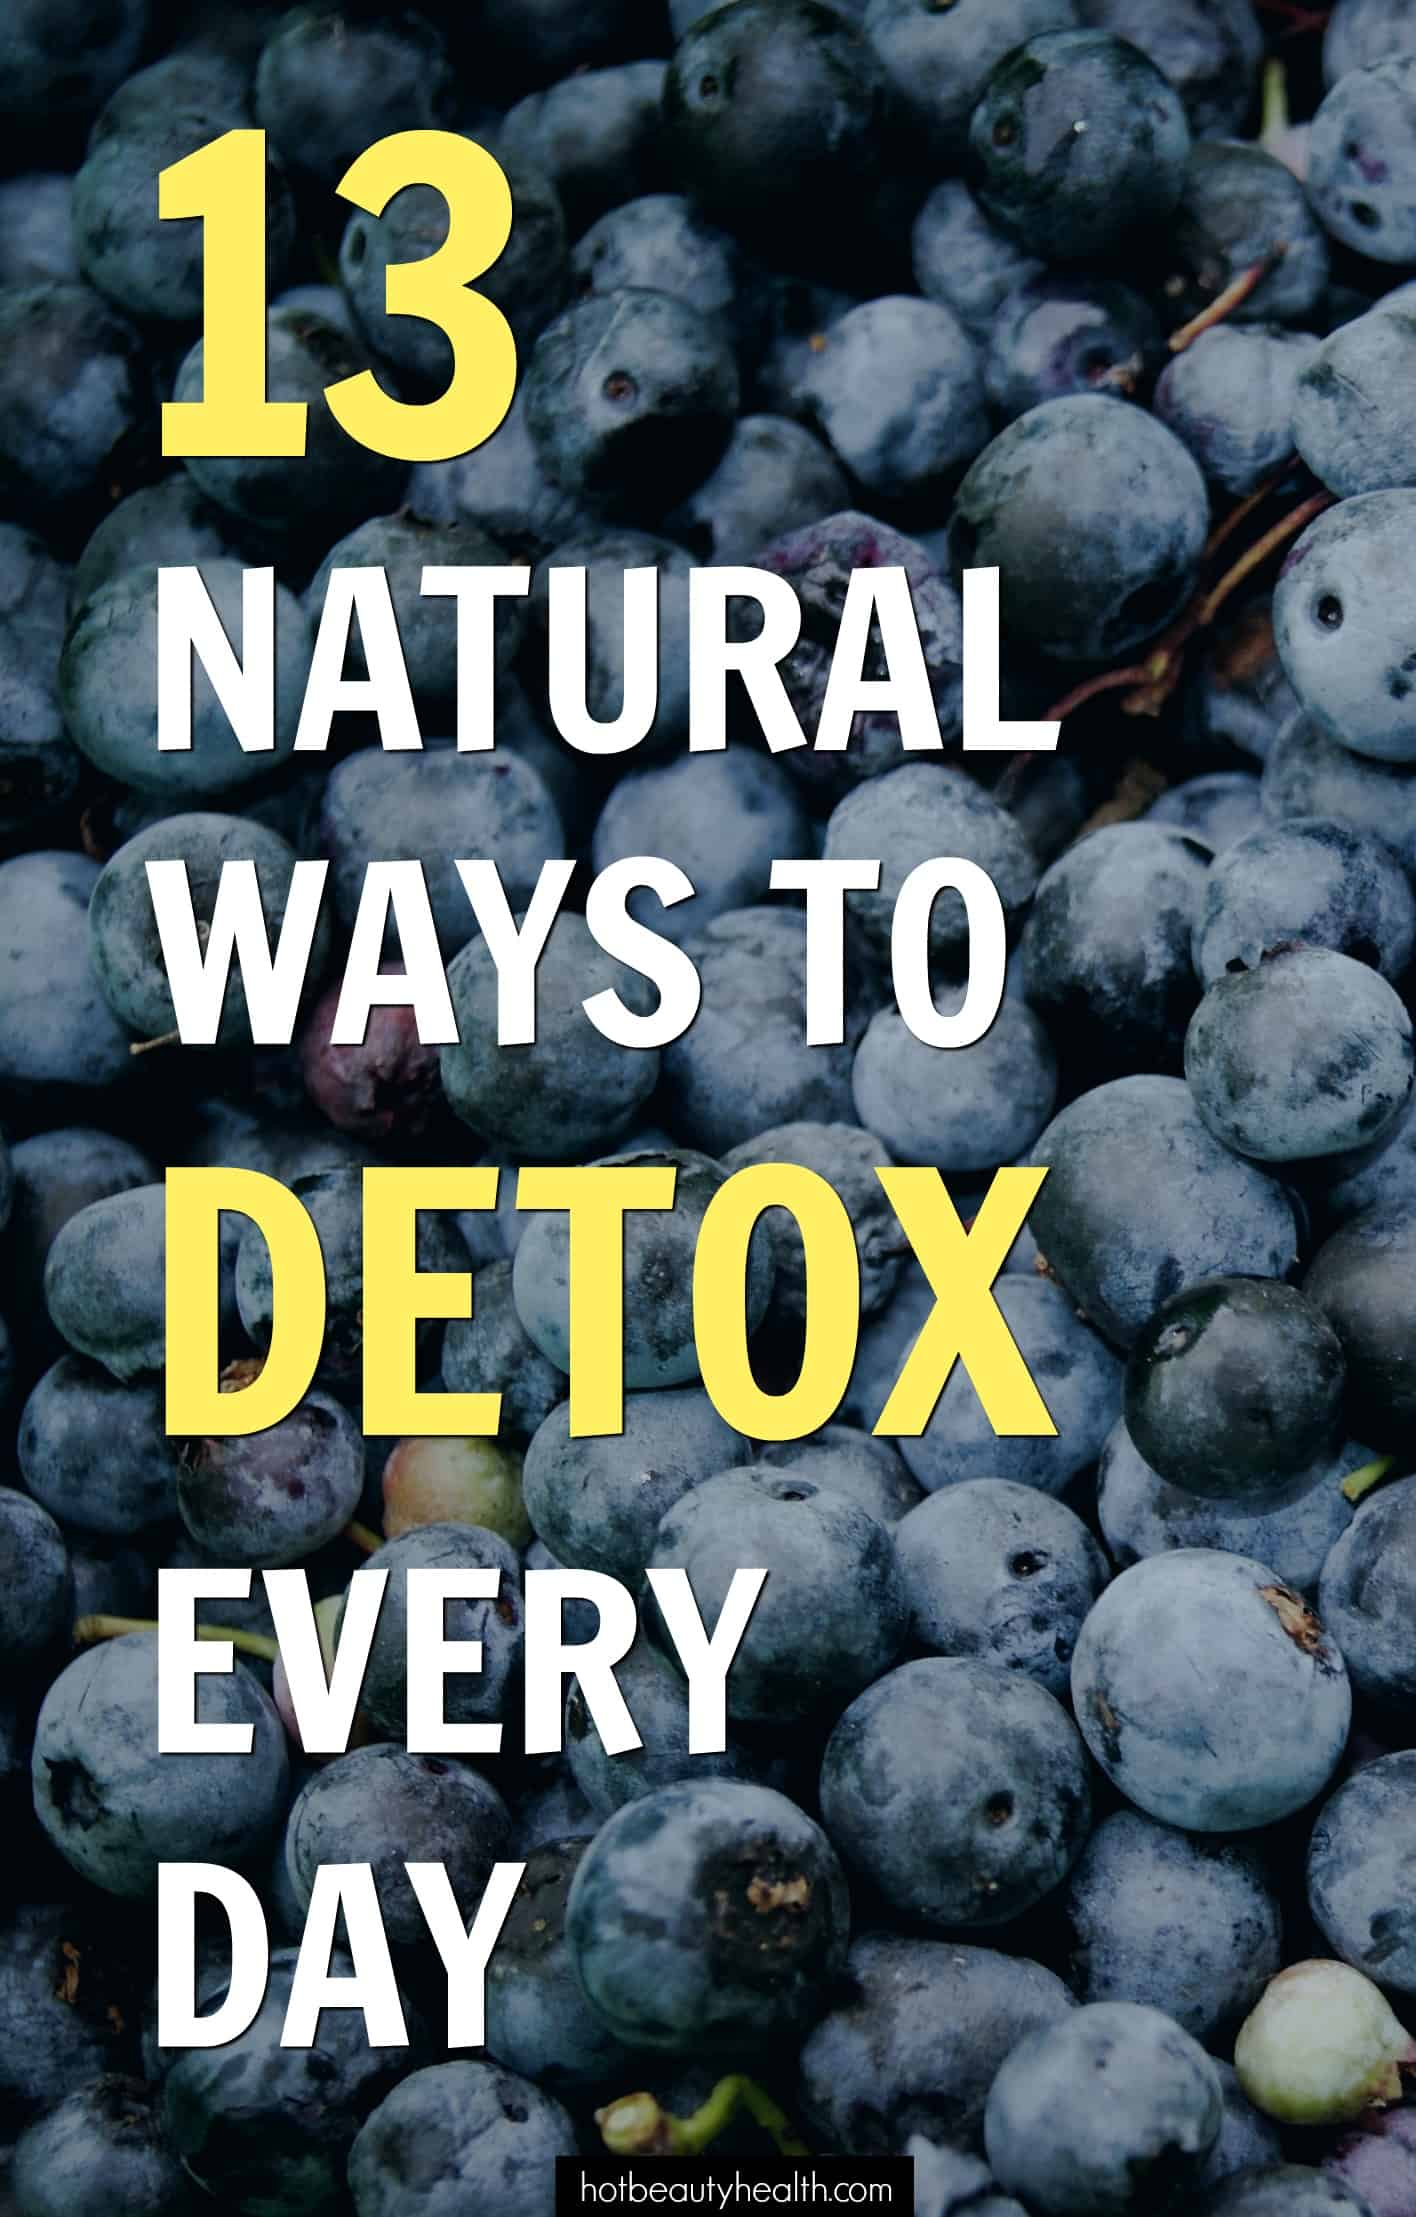 13 ways to detox every day